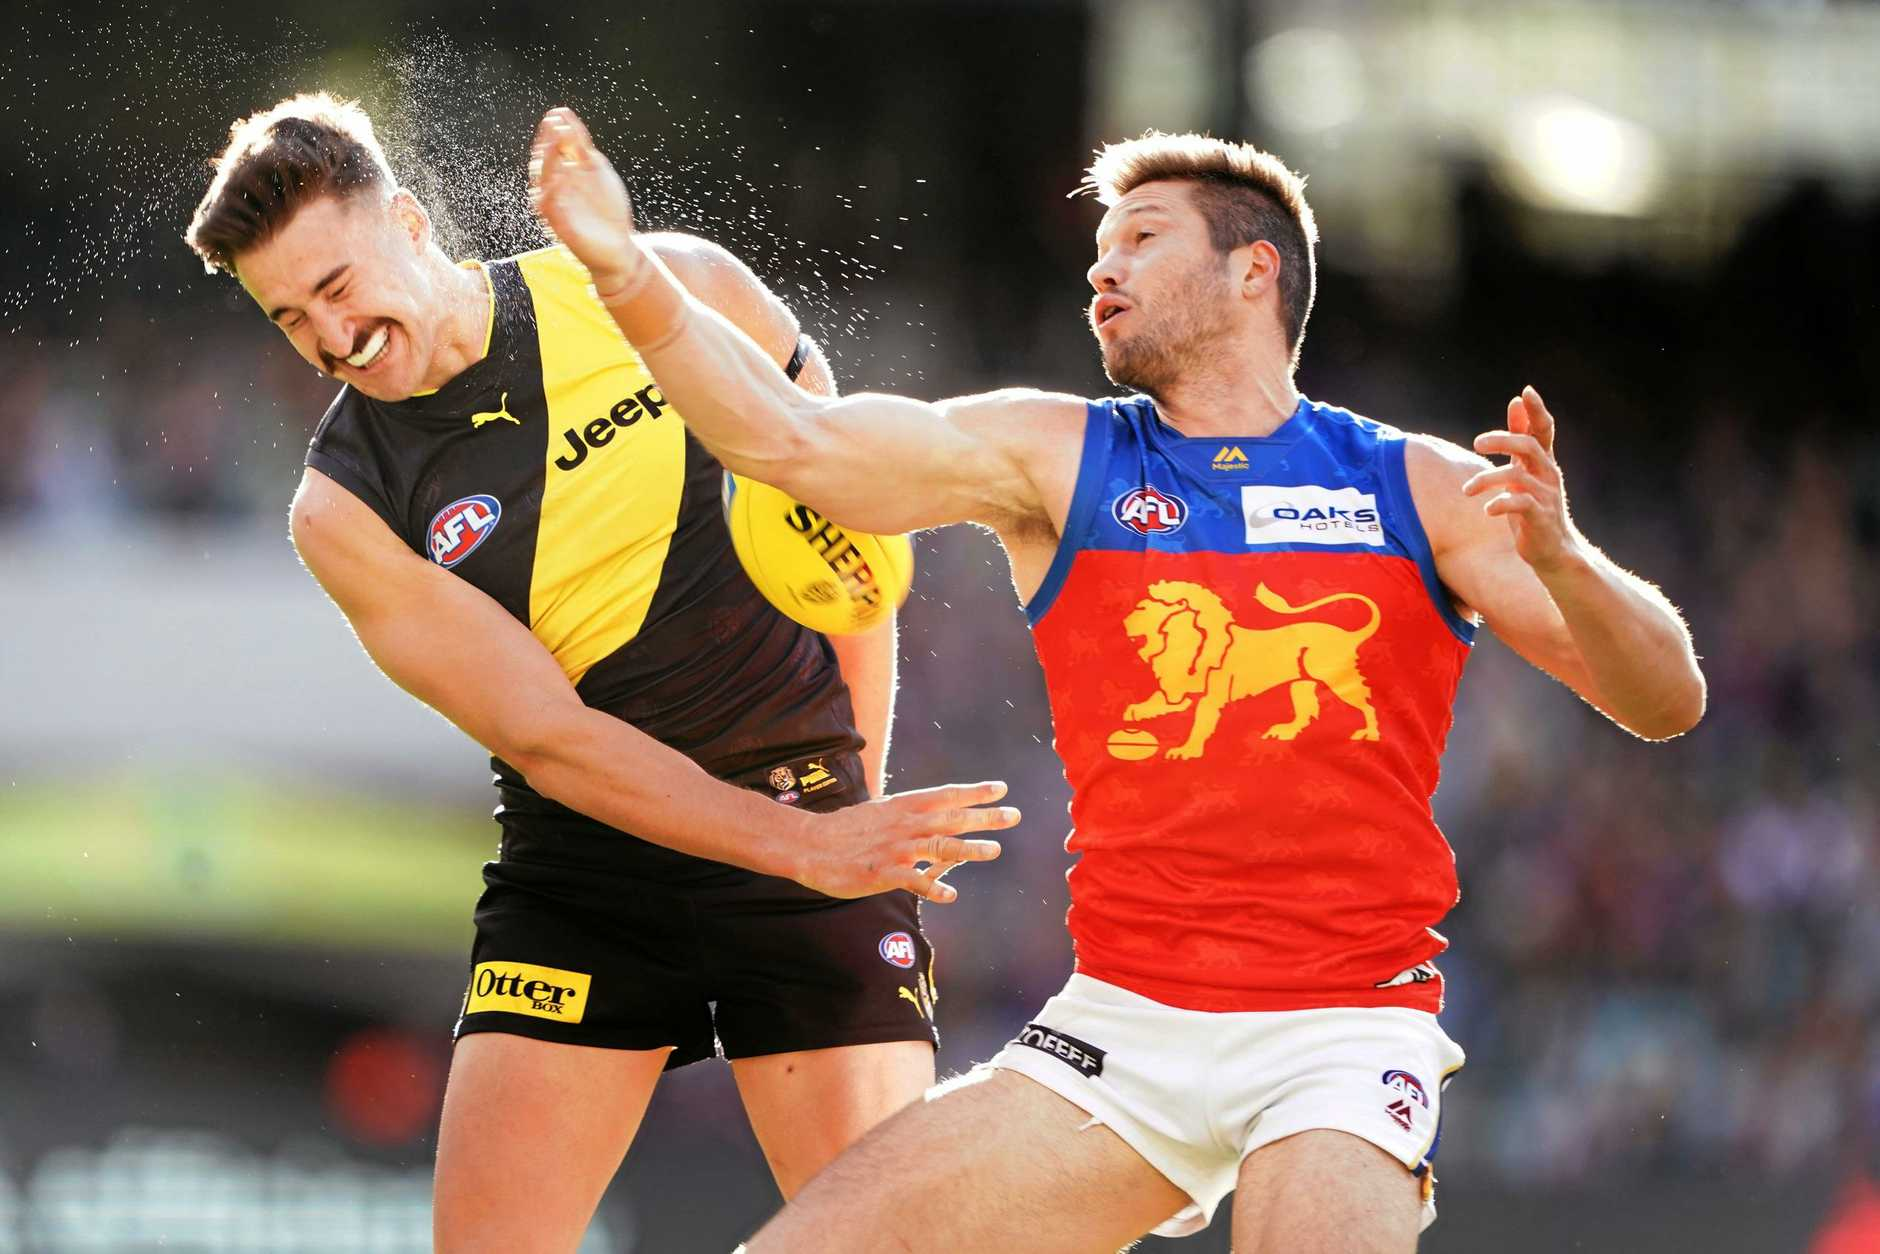 Martin clashes with Tigers rival Ivan Soldo during their round 25 showdown. Photo: Michael Dodge